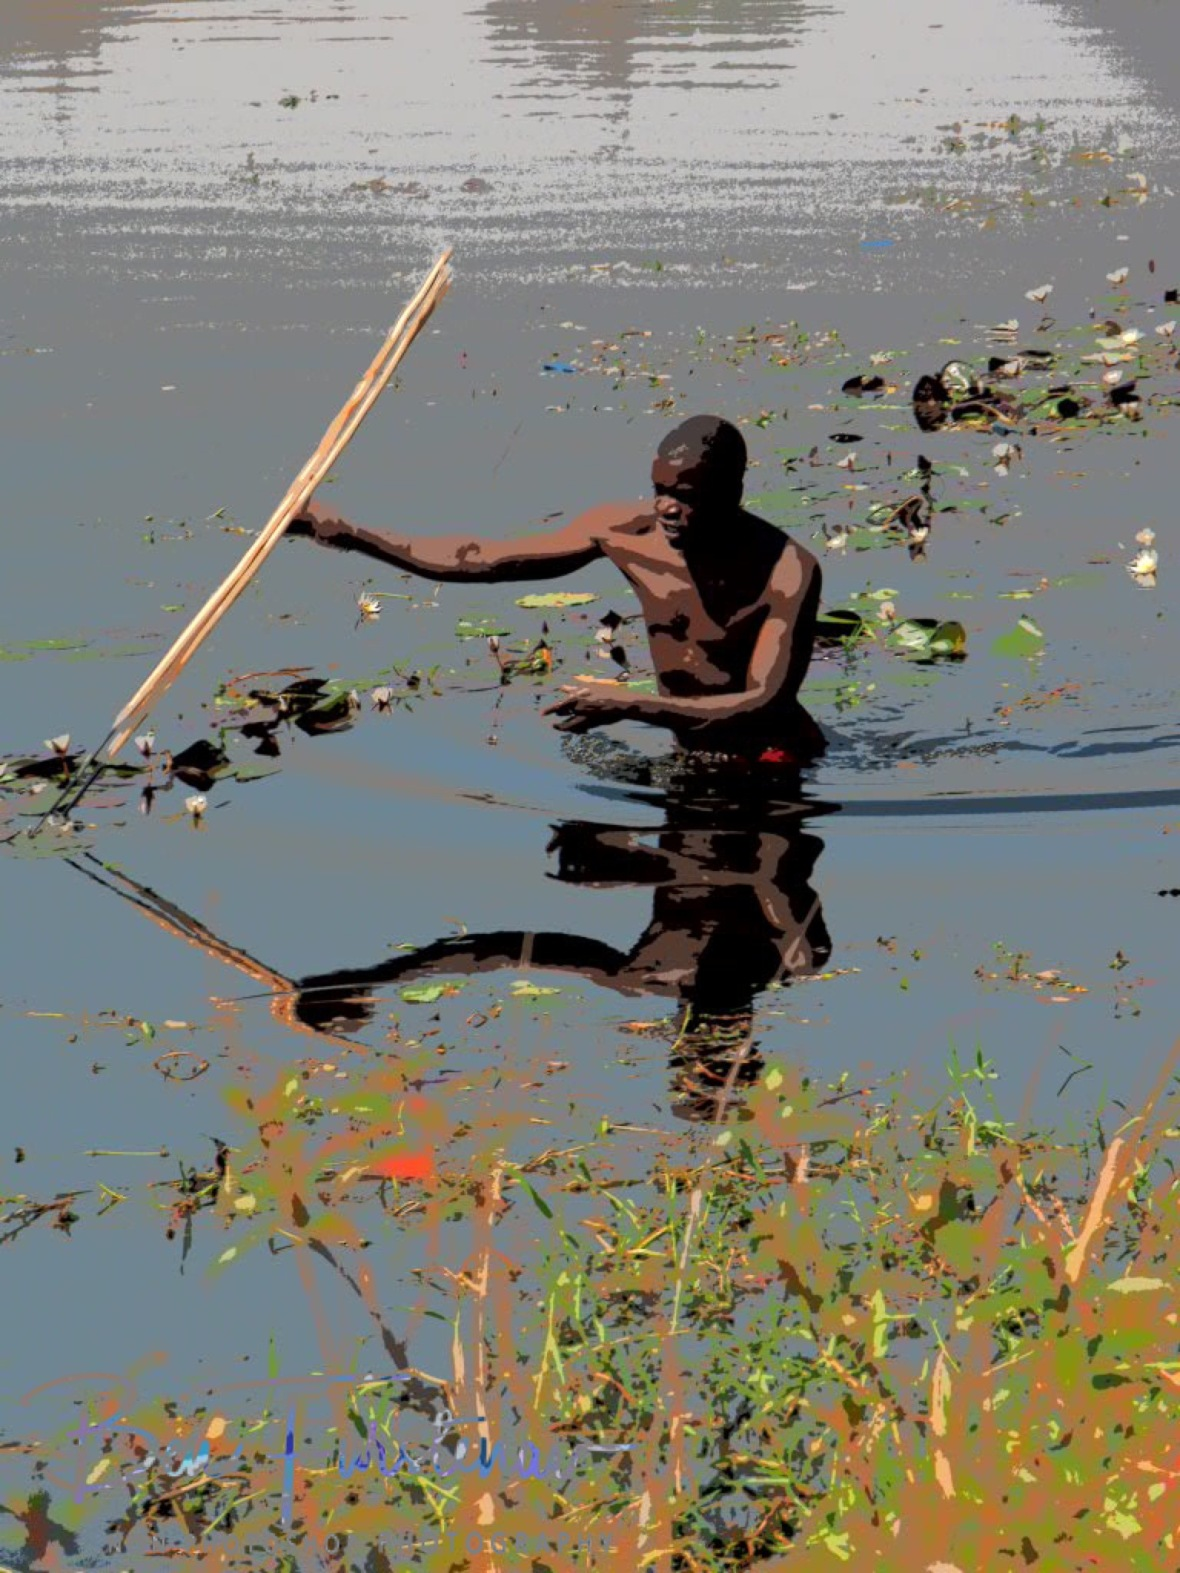 Spearing fish in Liuwa Plains National Park, Zambia